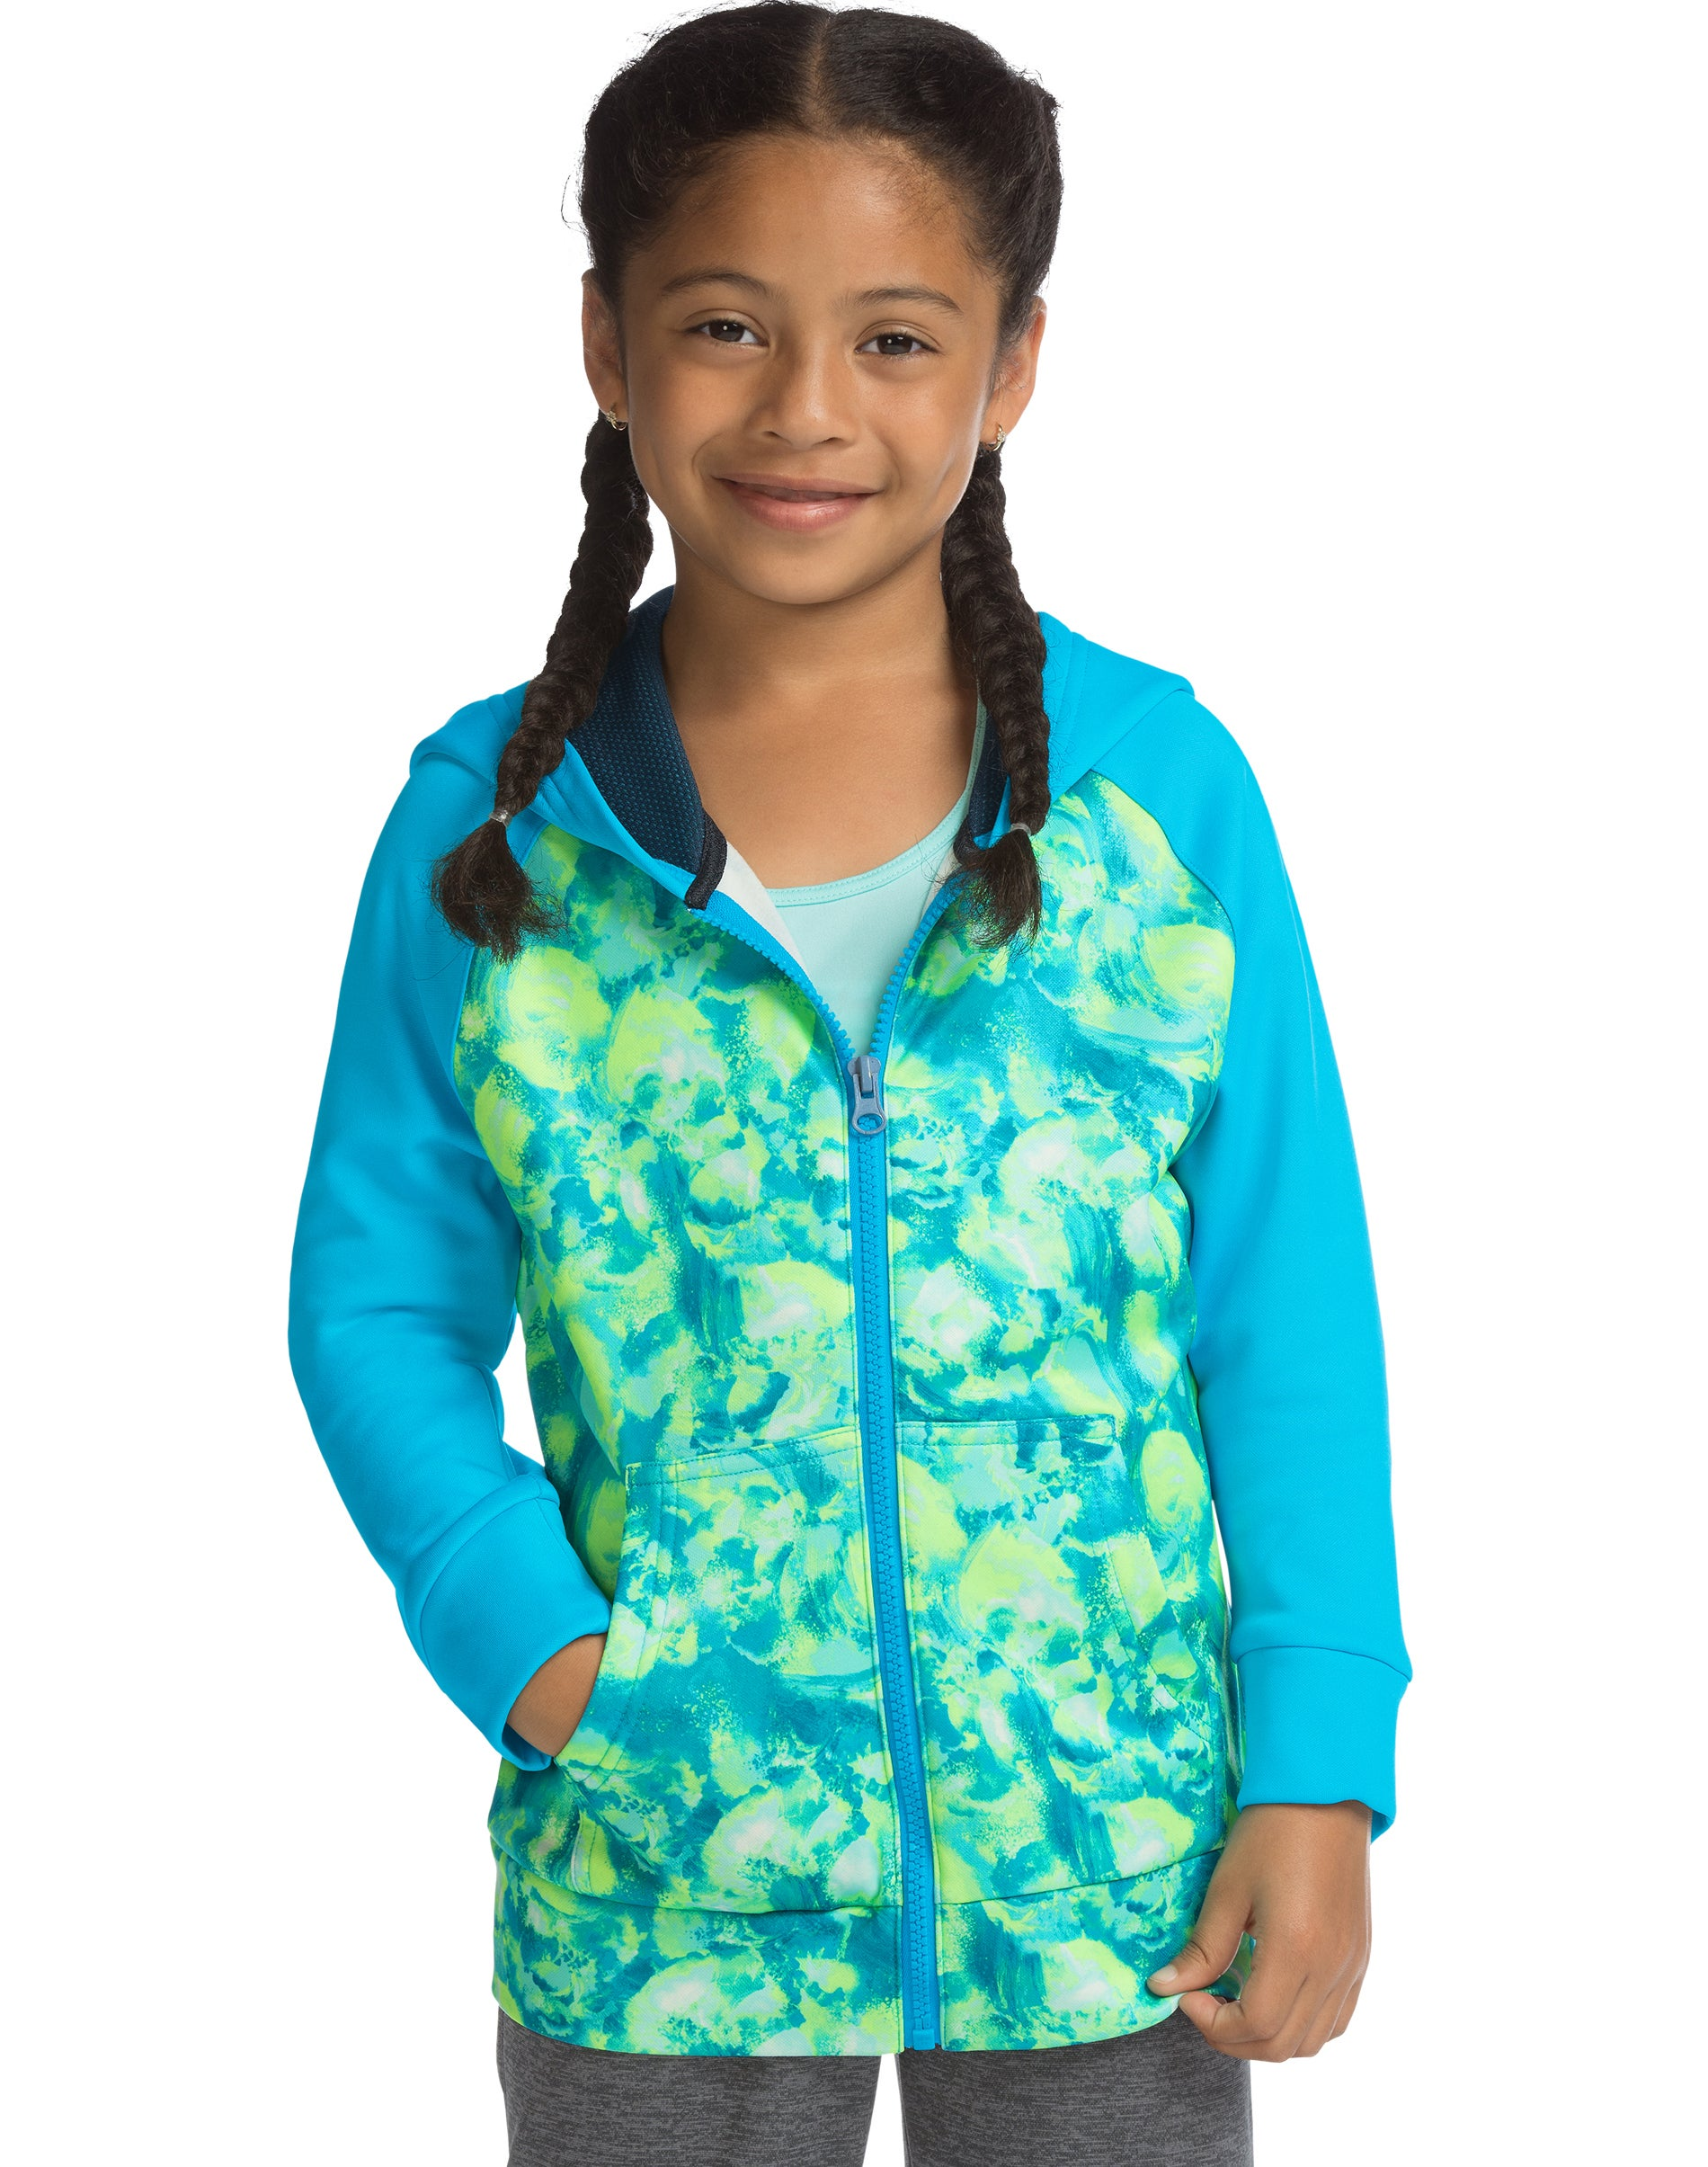 Hanes Girls Slub Jersey Full Zip Jacket Shirt